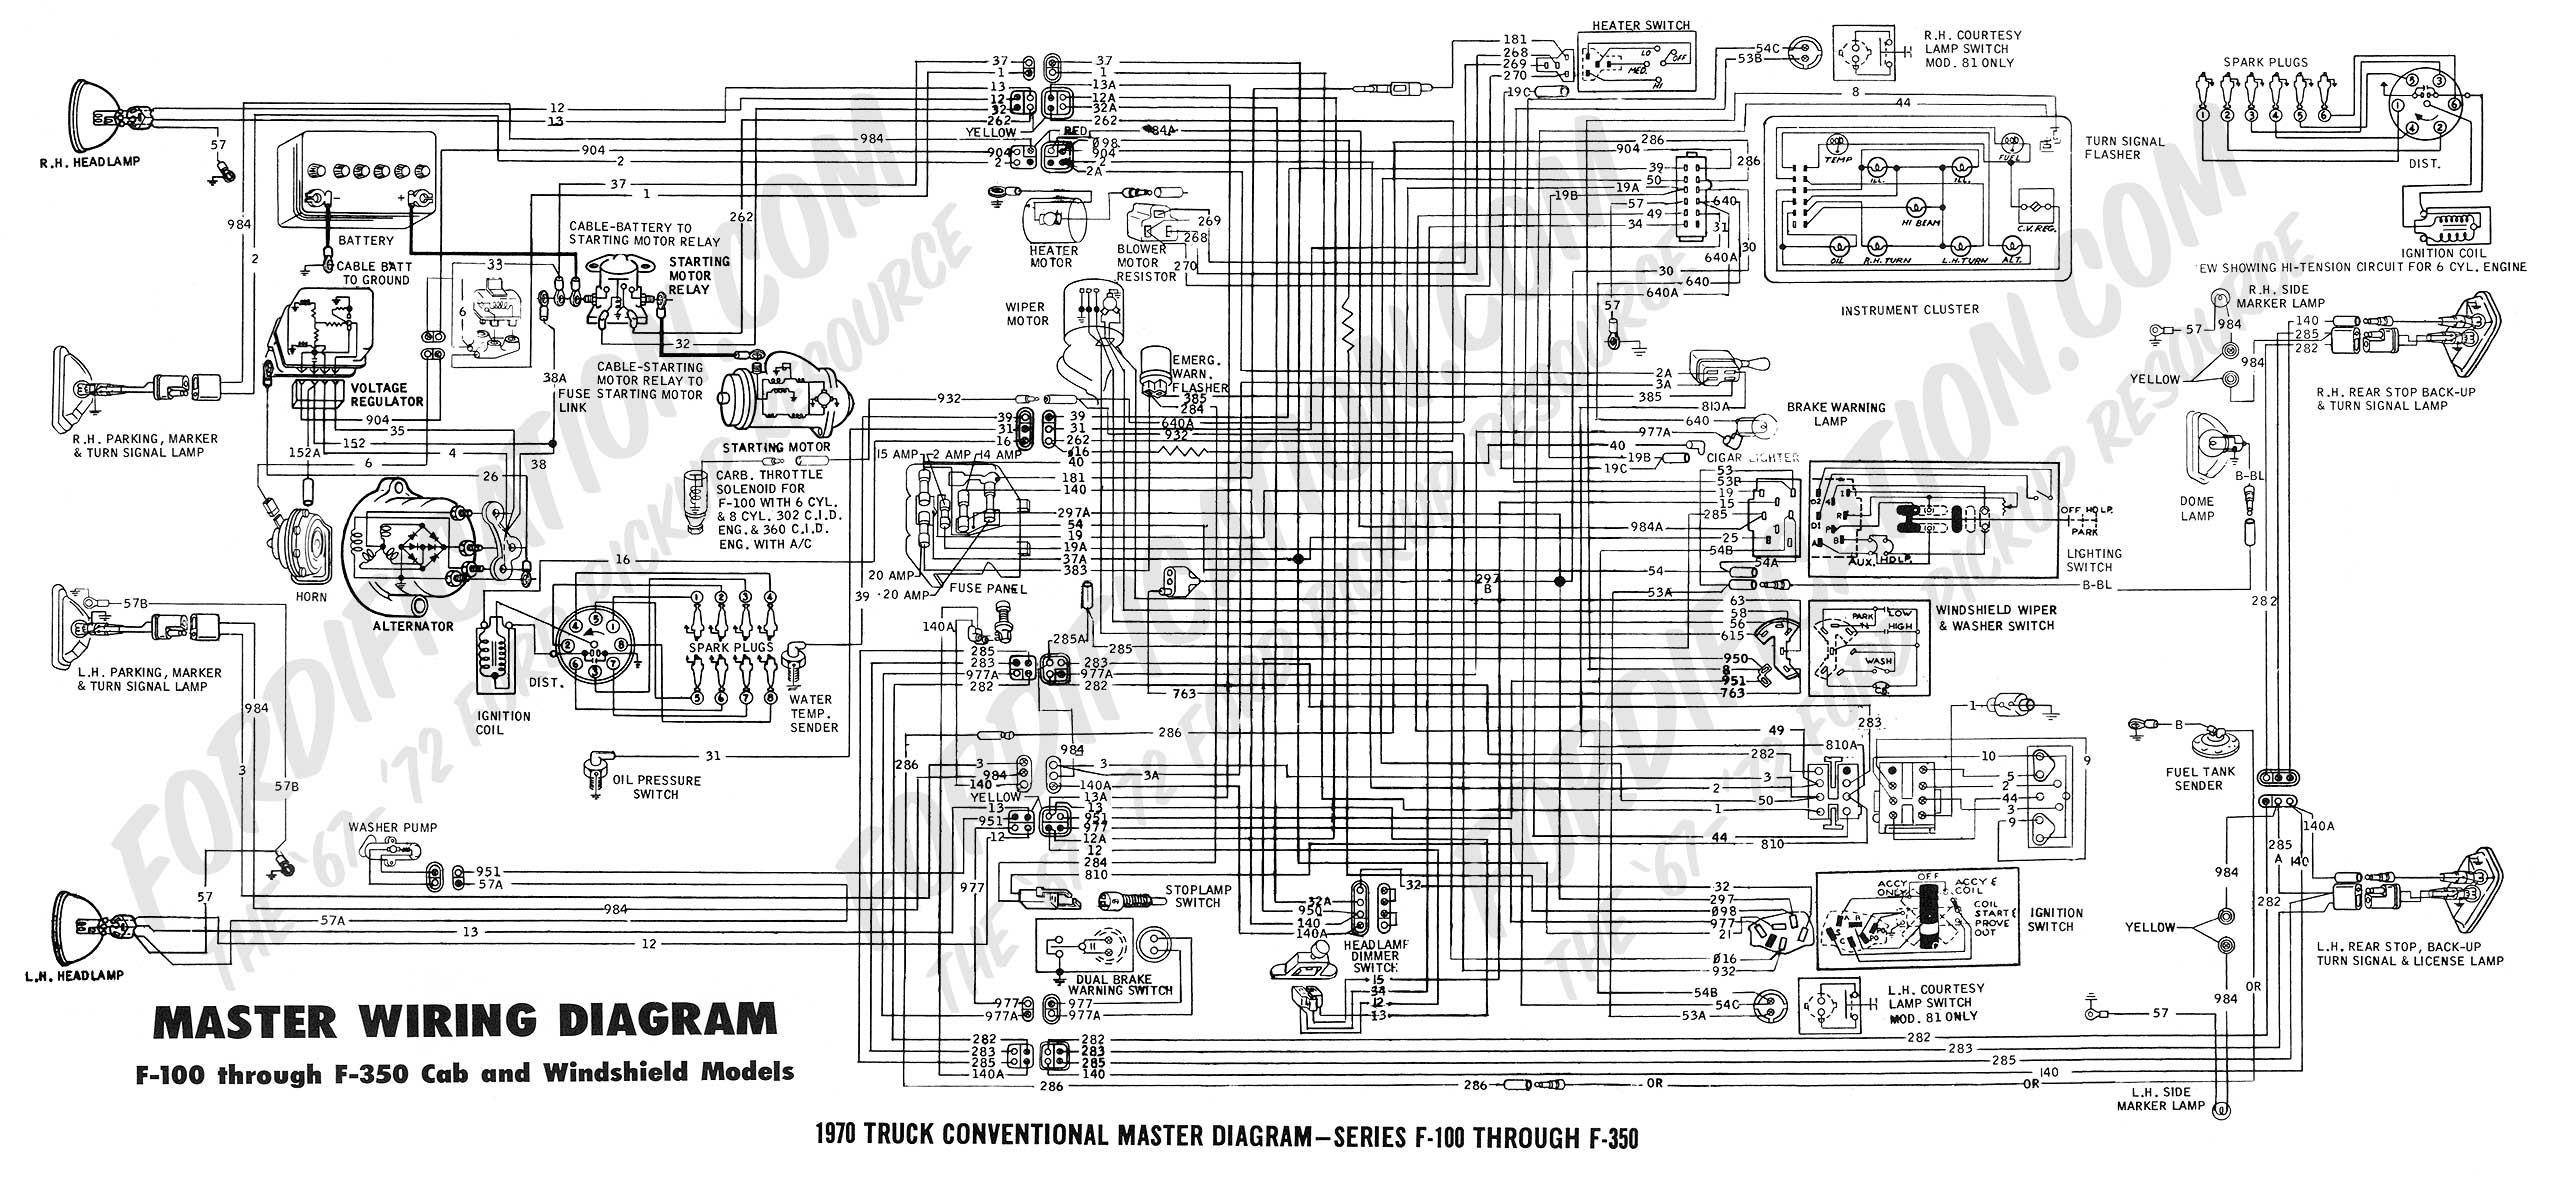 2002 ford e150 wiring diagram ford xy wiring diagram ford wiring diagrams online